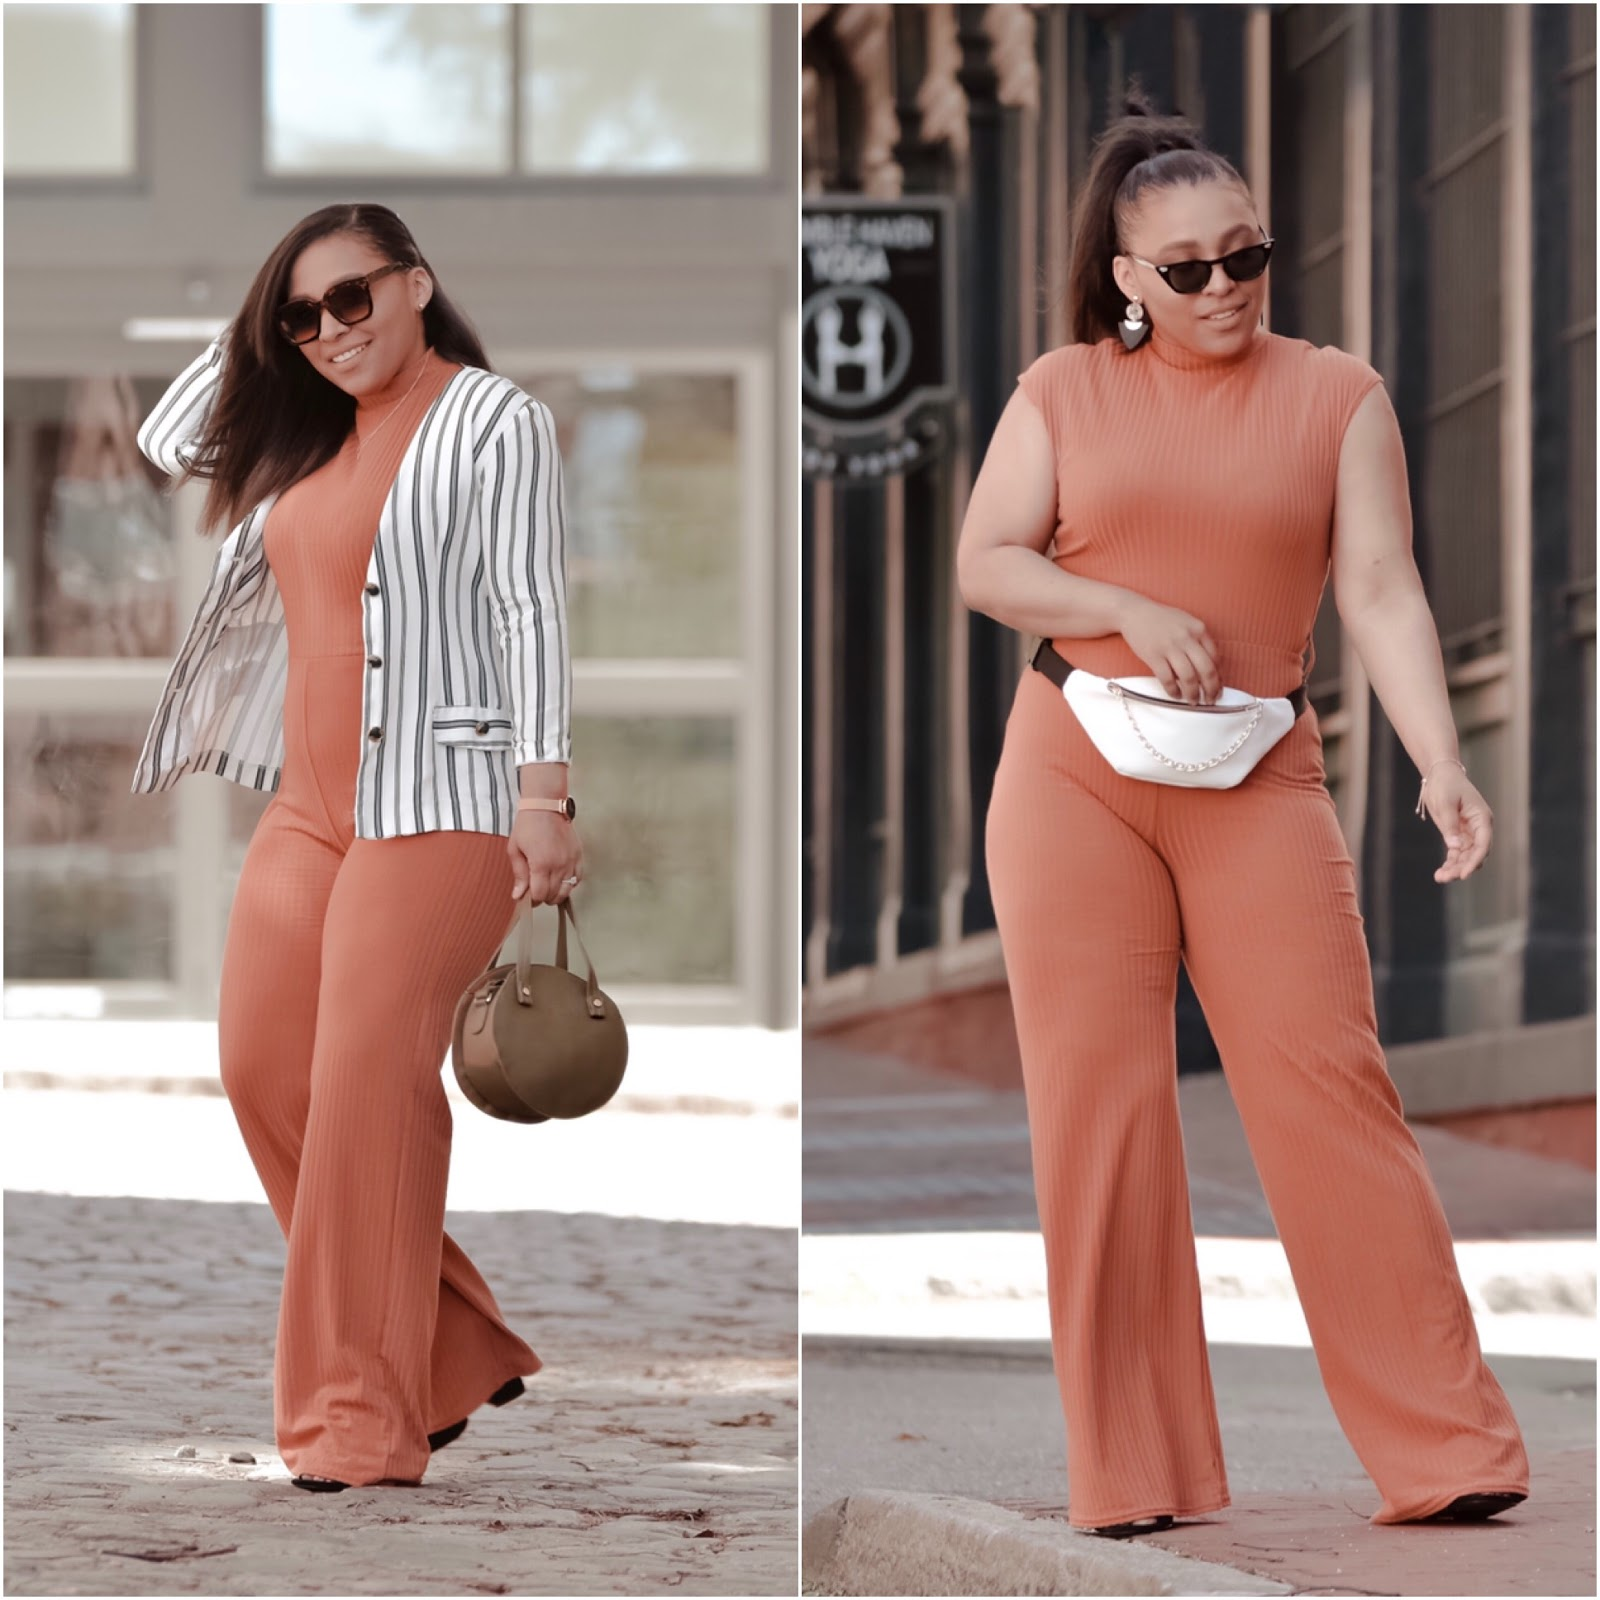 FemmeLuxe, jumpsuit, remix outfit, Coral jumpsuit, one piece, romper, streetstyle, stylish mom bloggers, summer outfit ideas, fanny pack trend